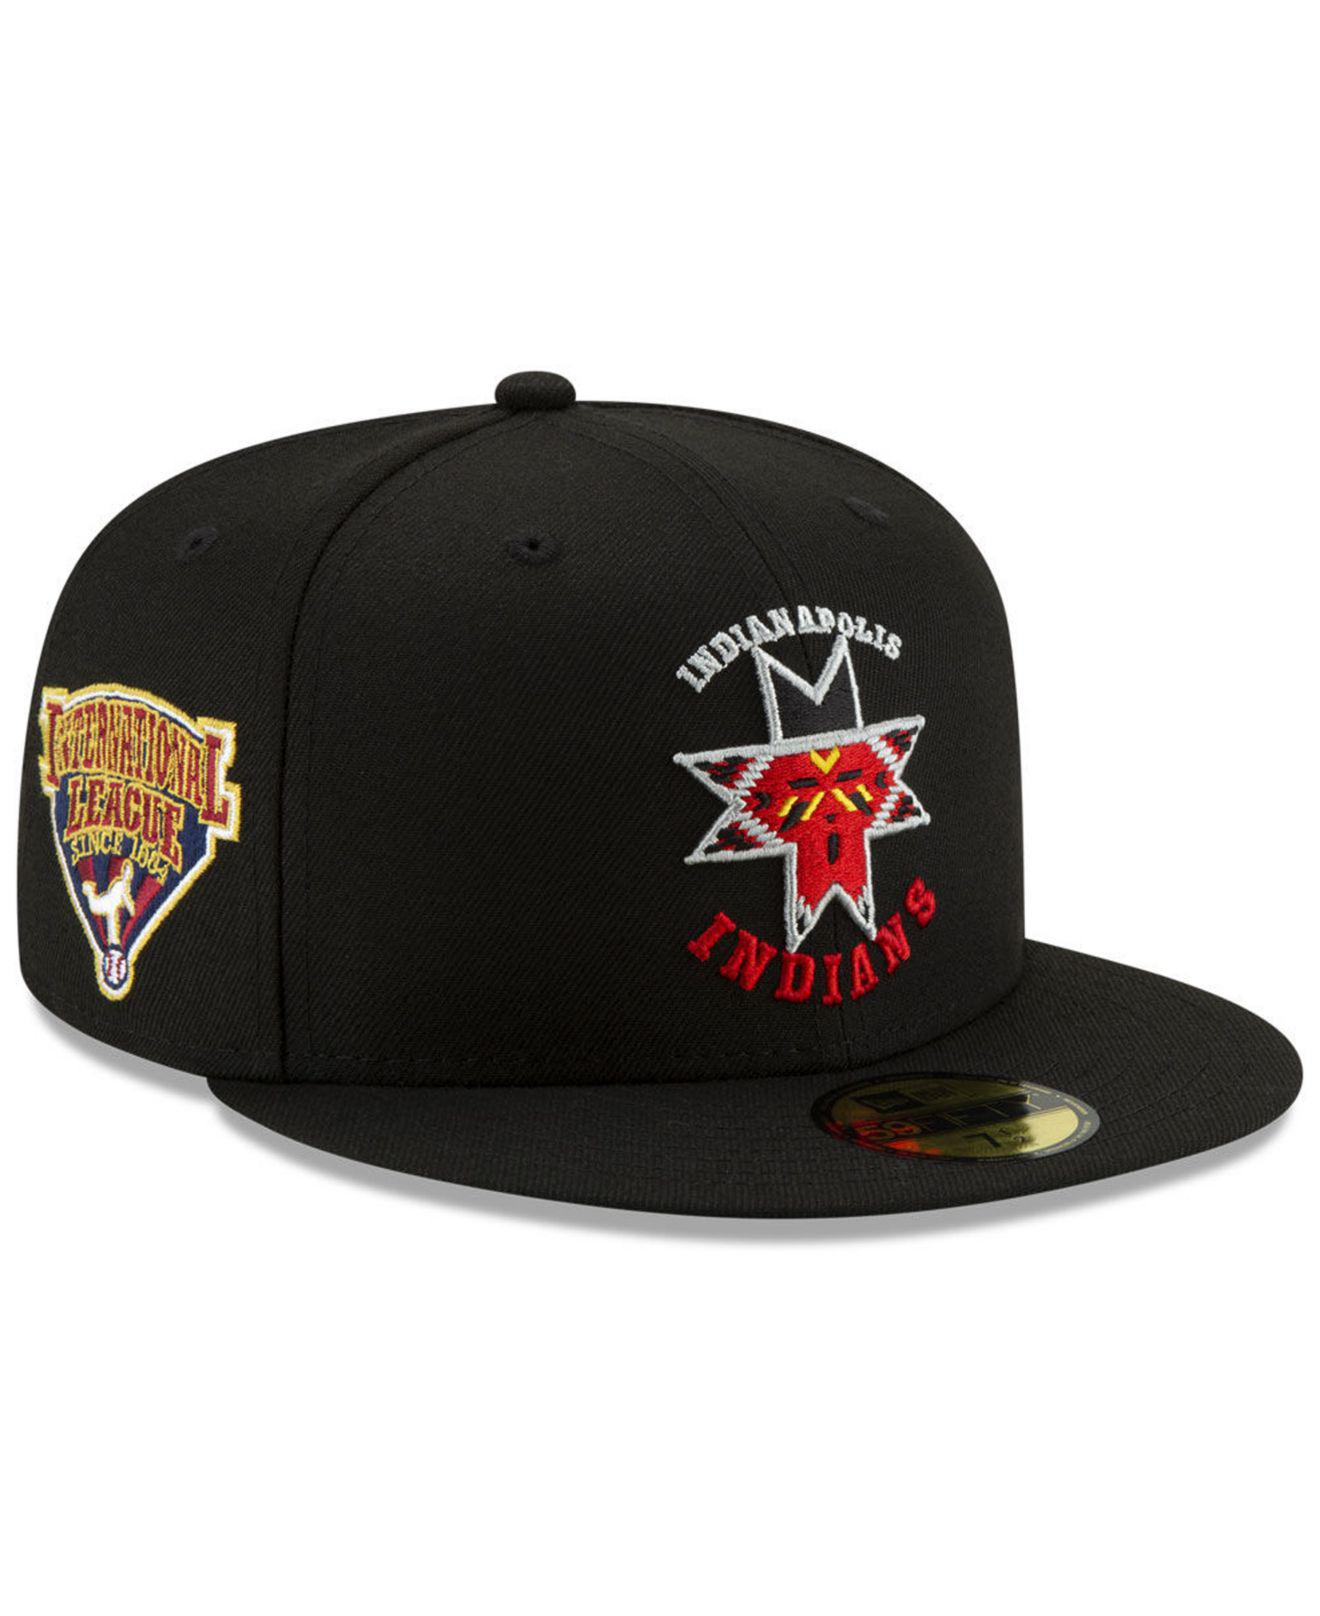 quality design 11da6 9dbd5 KTZ. Men s Black Indianapolis Indians League Patch 59fifty-fitted Cap